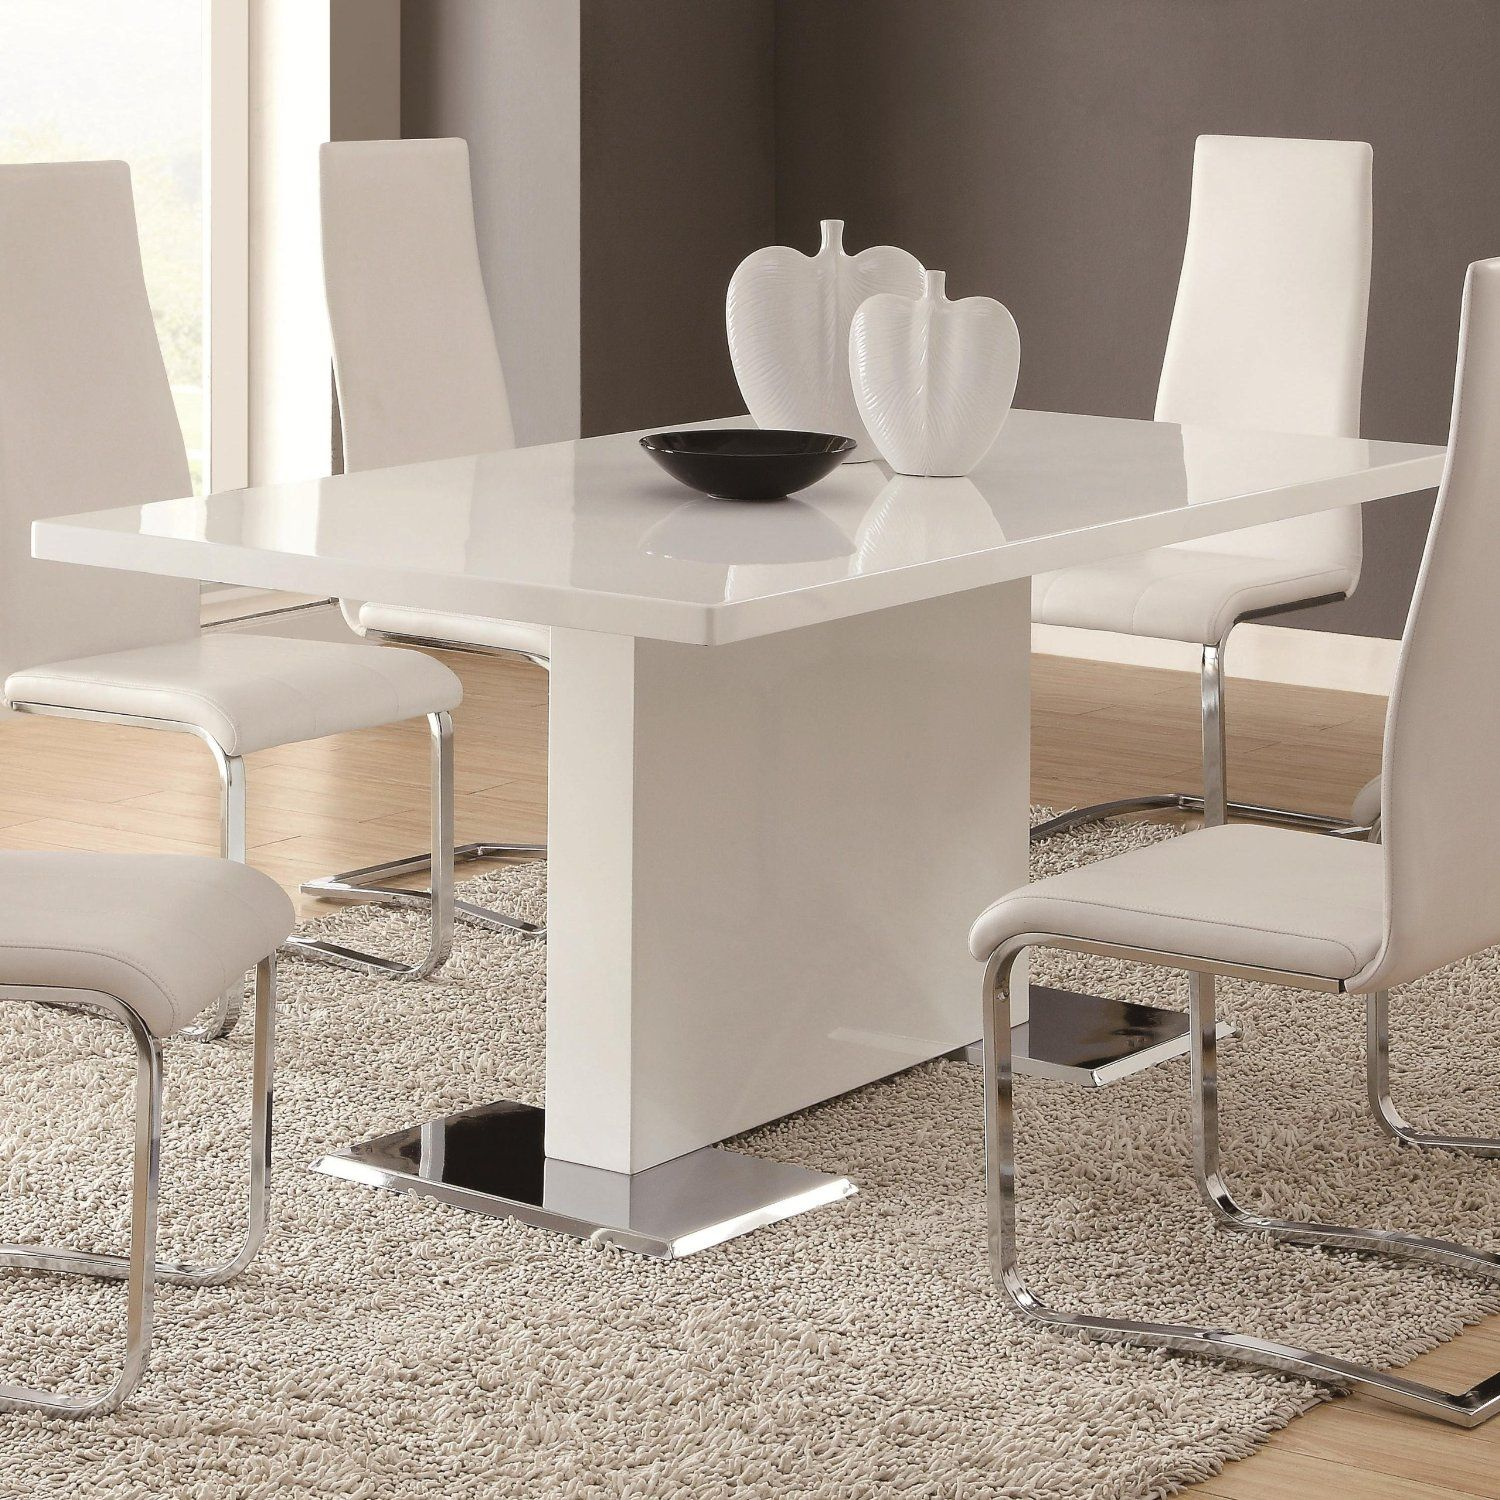 White Kitchen Tables And Chairs: Glossy White Contemporary Dining Table